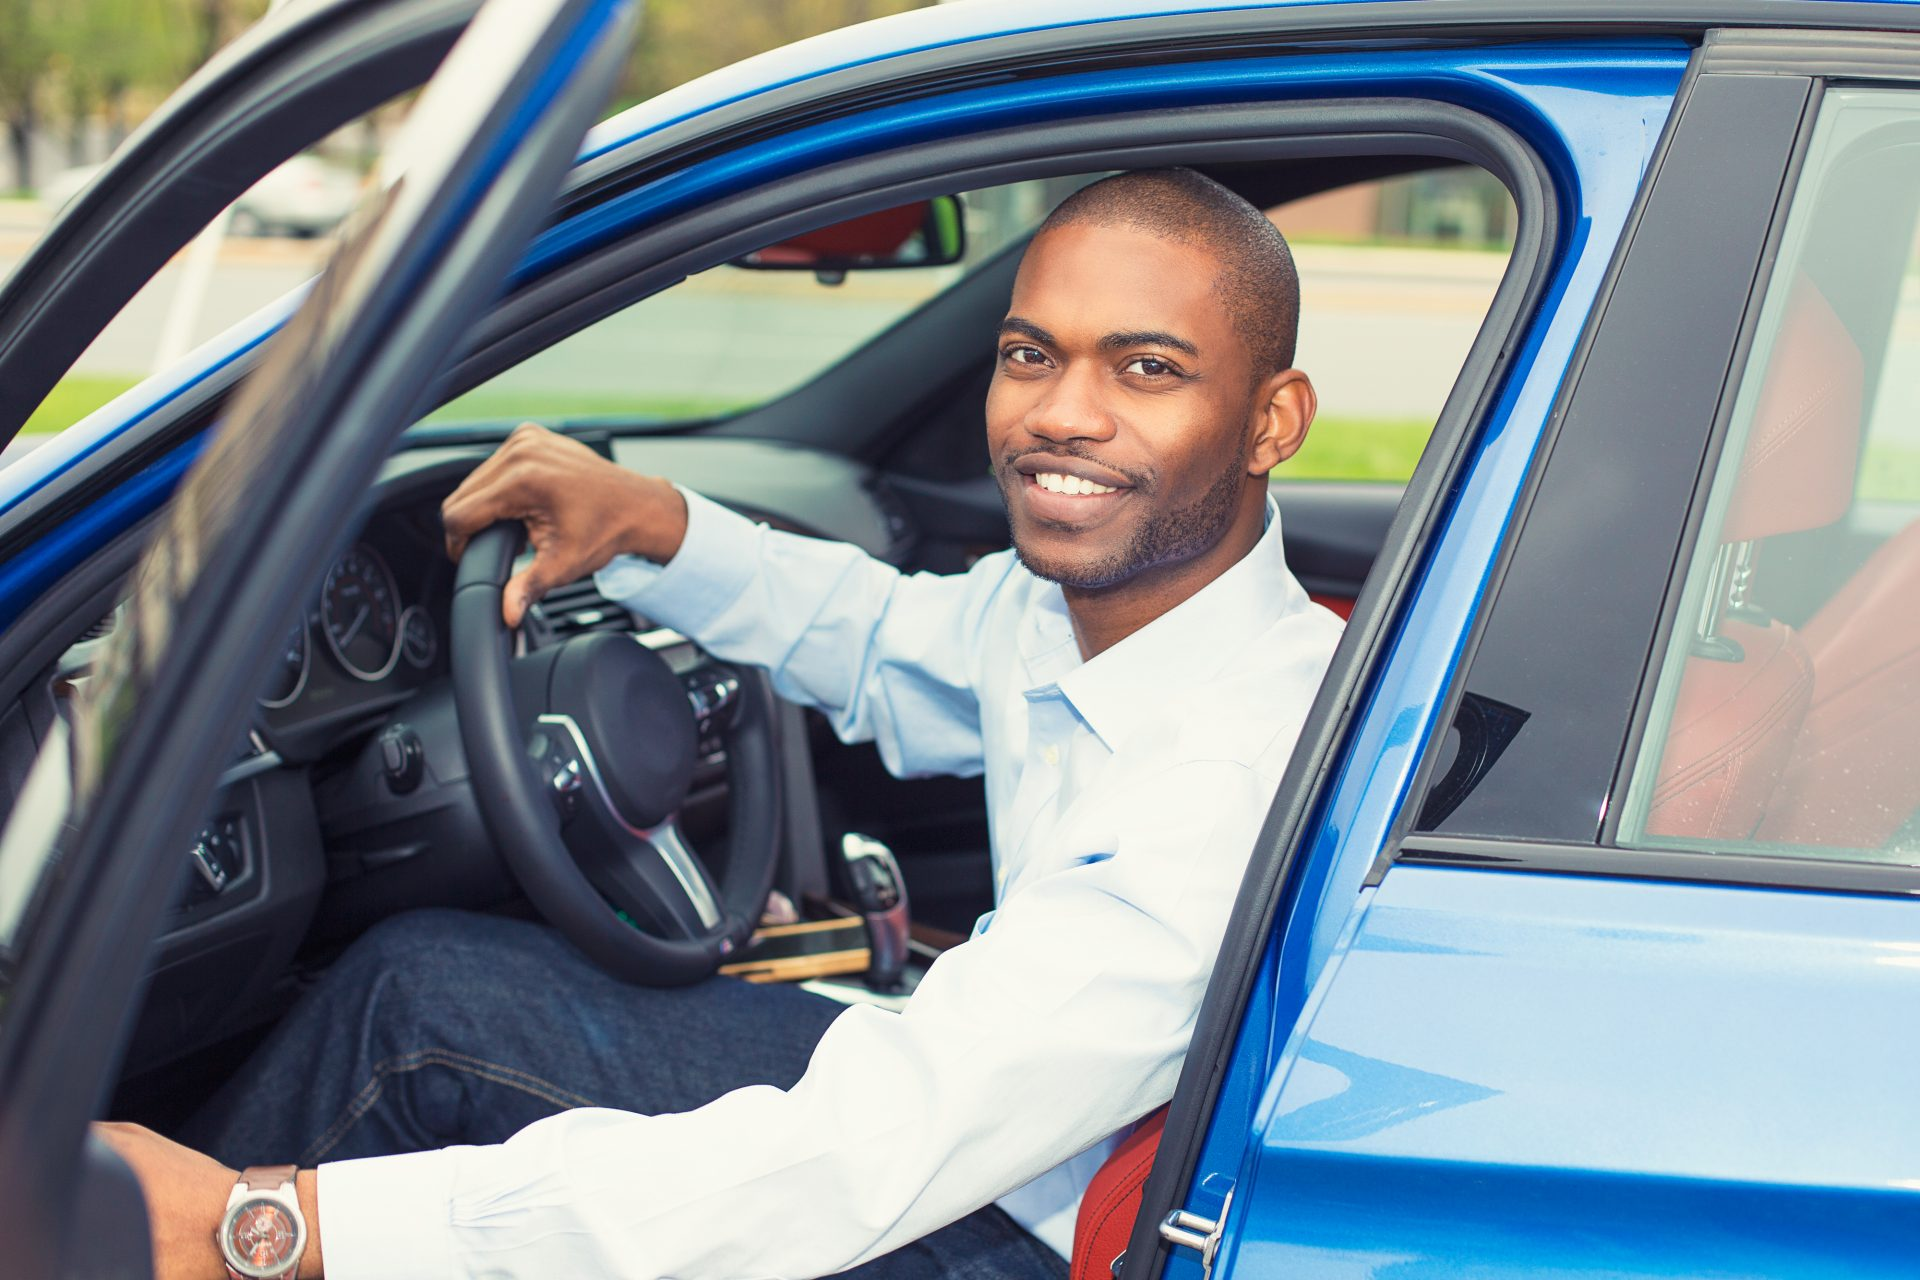 Young smiling man sitting in new car